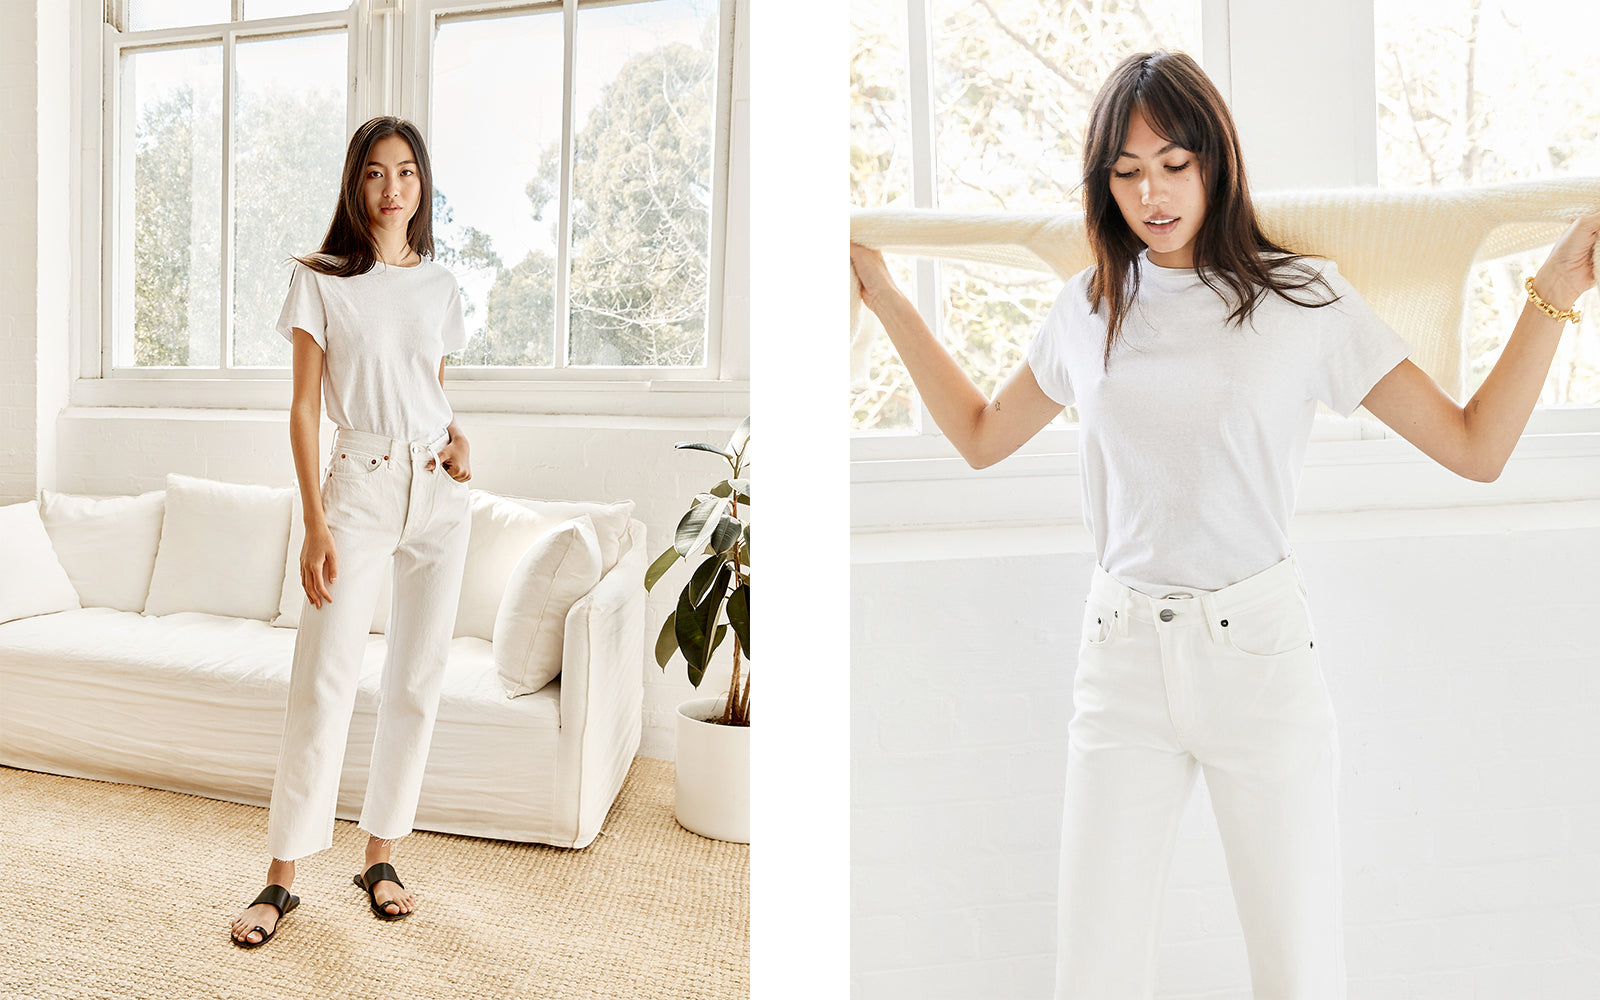 Outfit repeating: all white